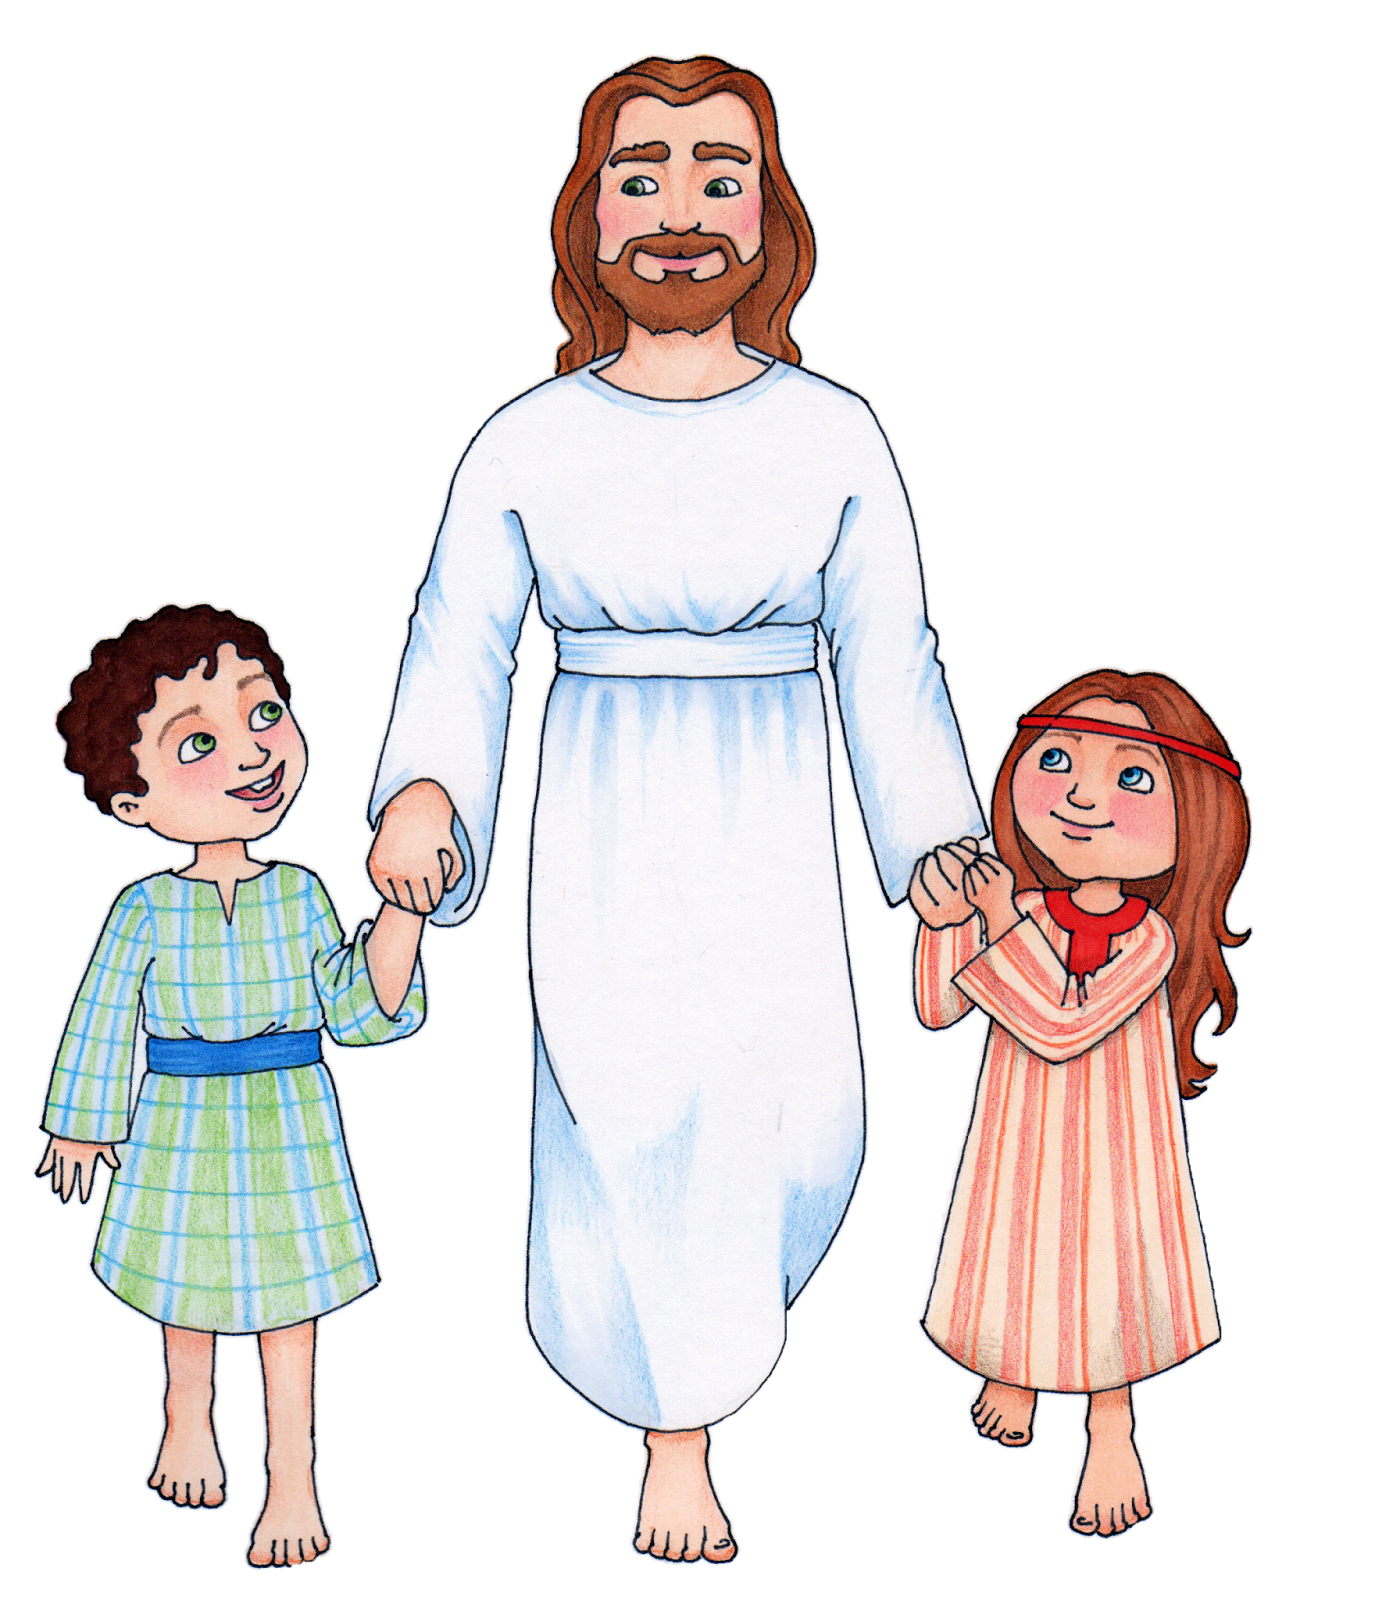 Clipart of jesus clipart 4